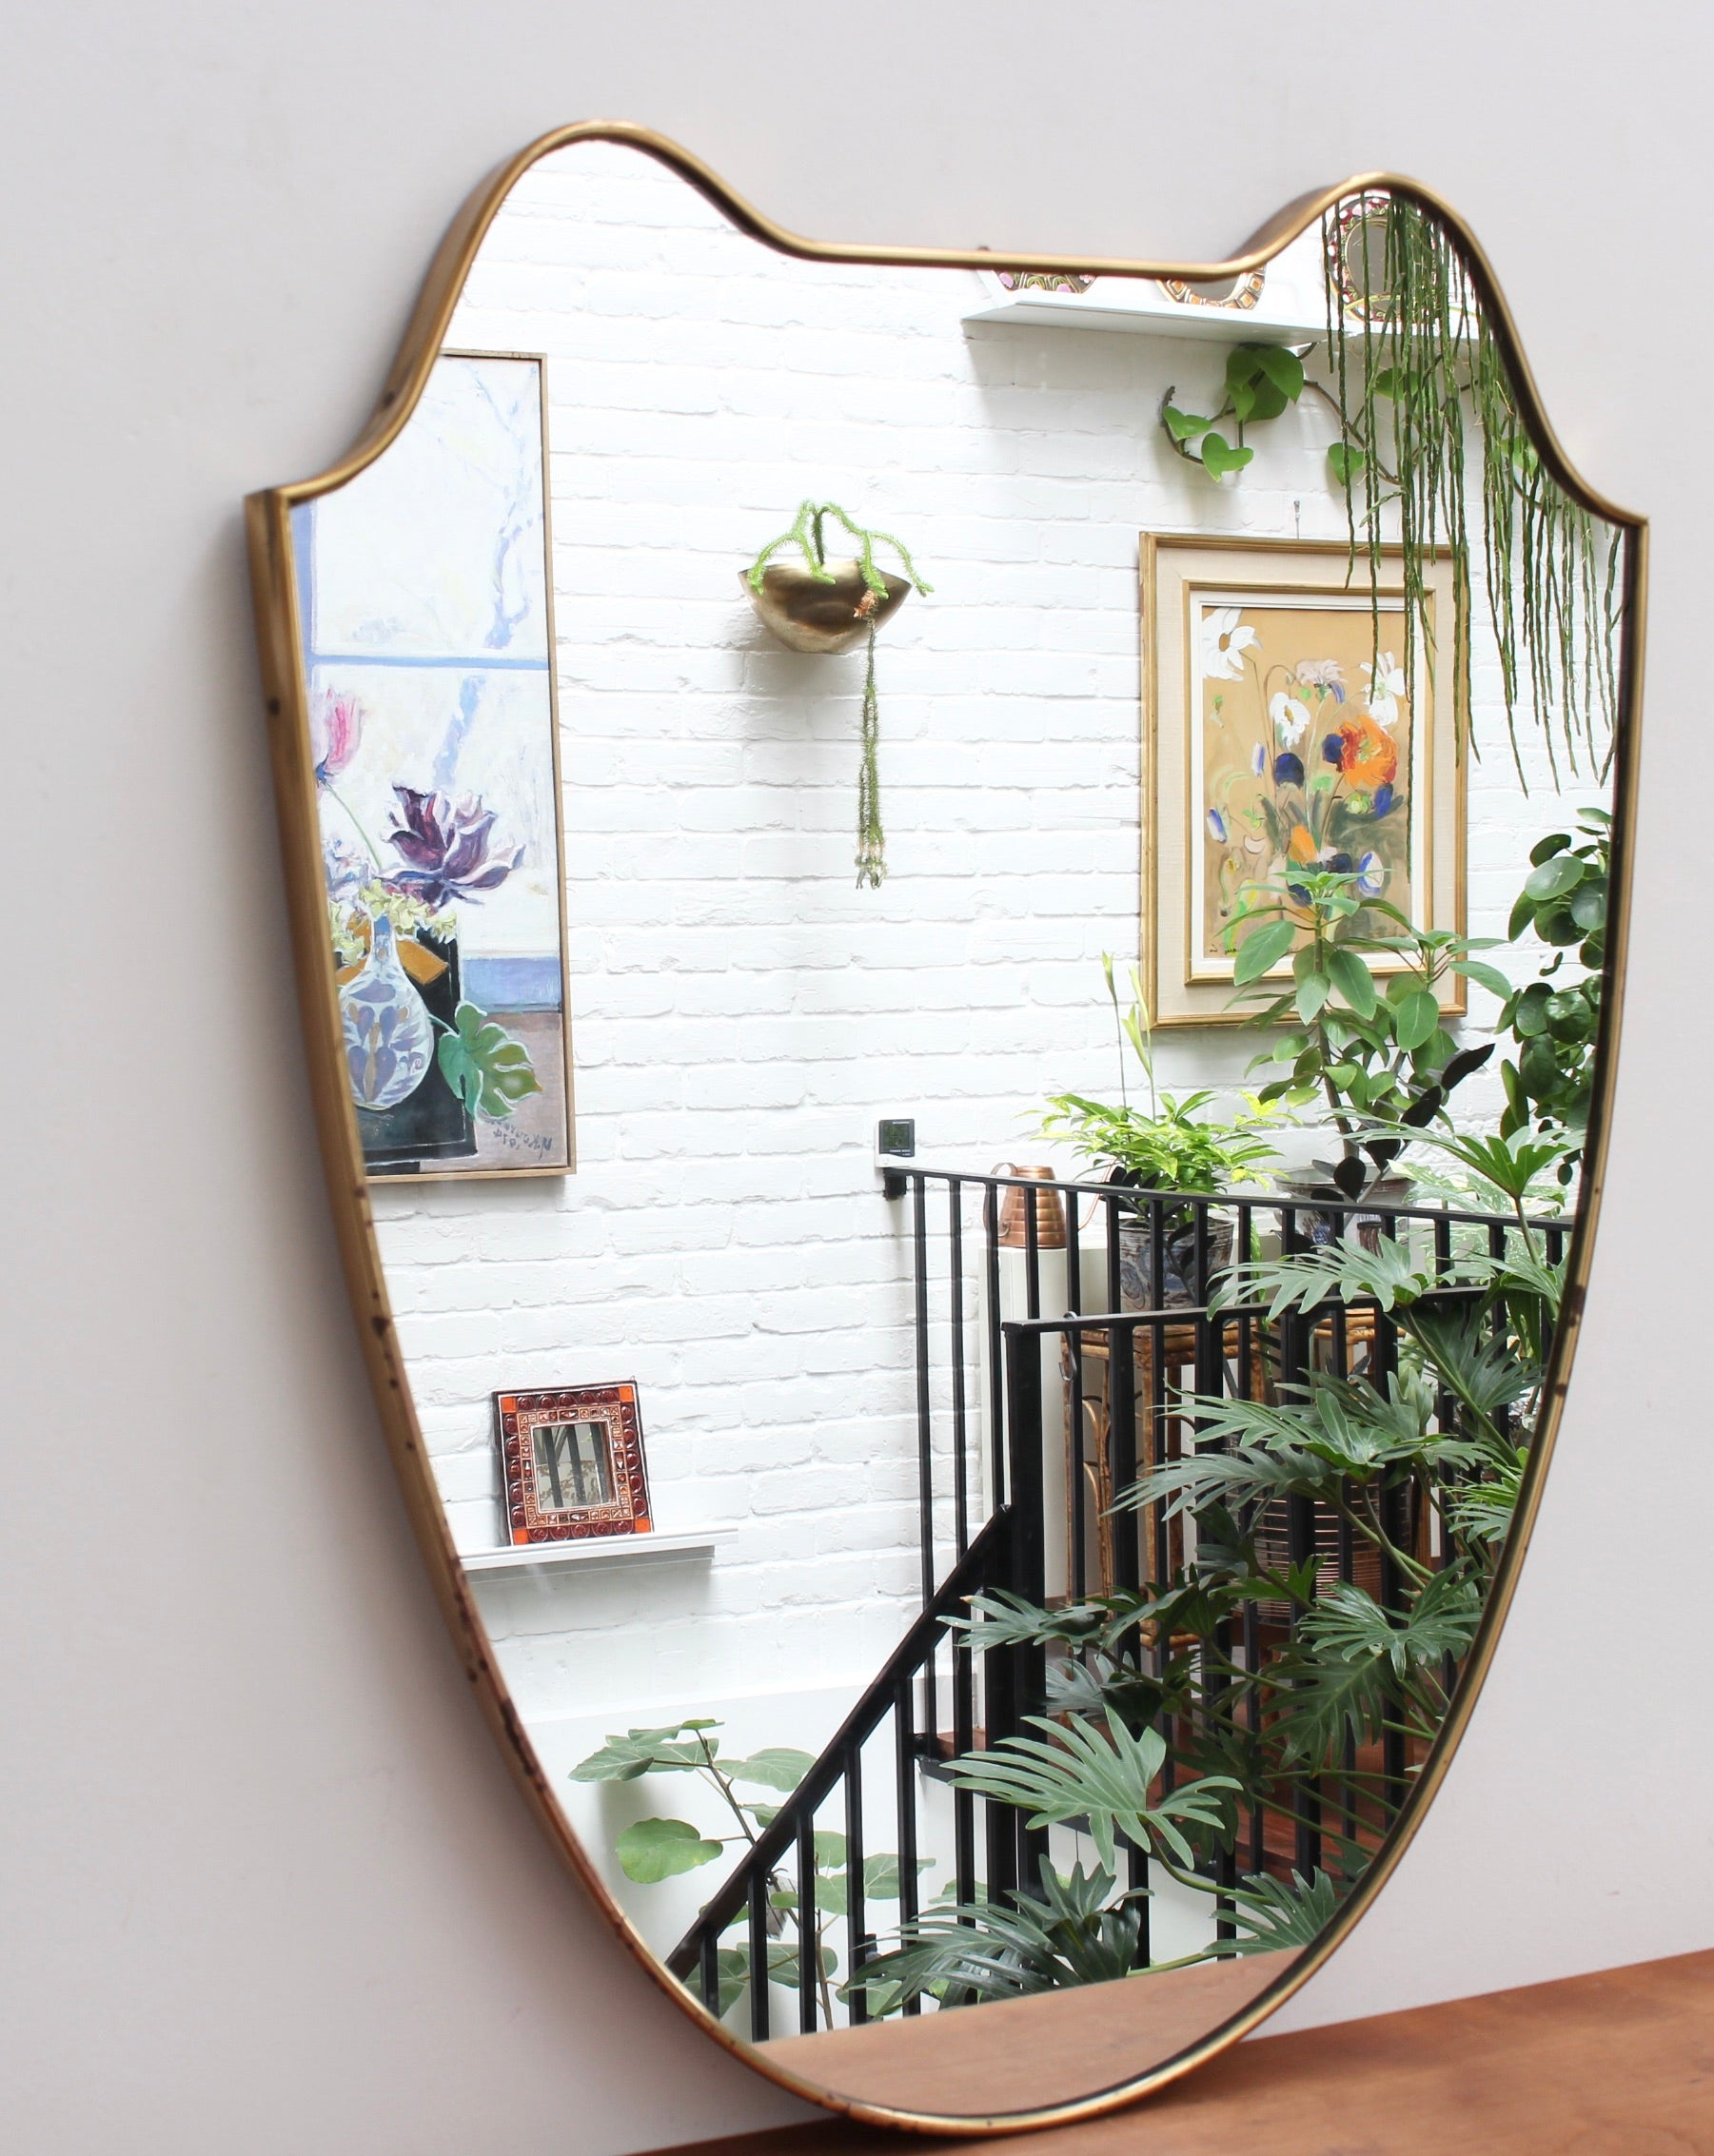 Mid-Century Eared Crest-Shaped Italian Wall Mirror with Brass Frame (circa 1950s)